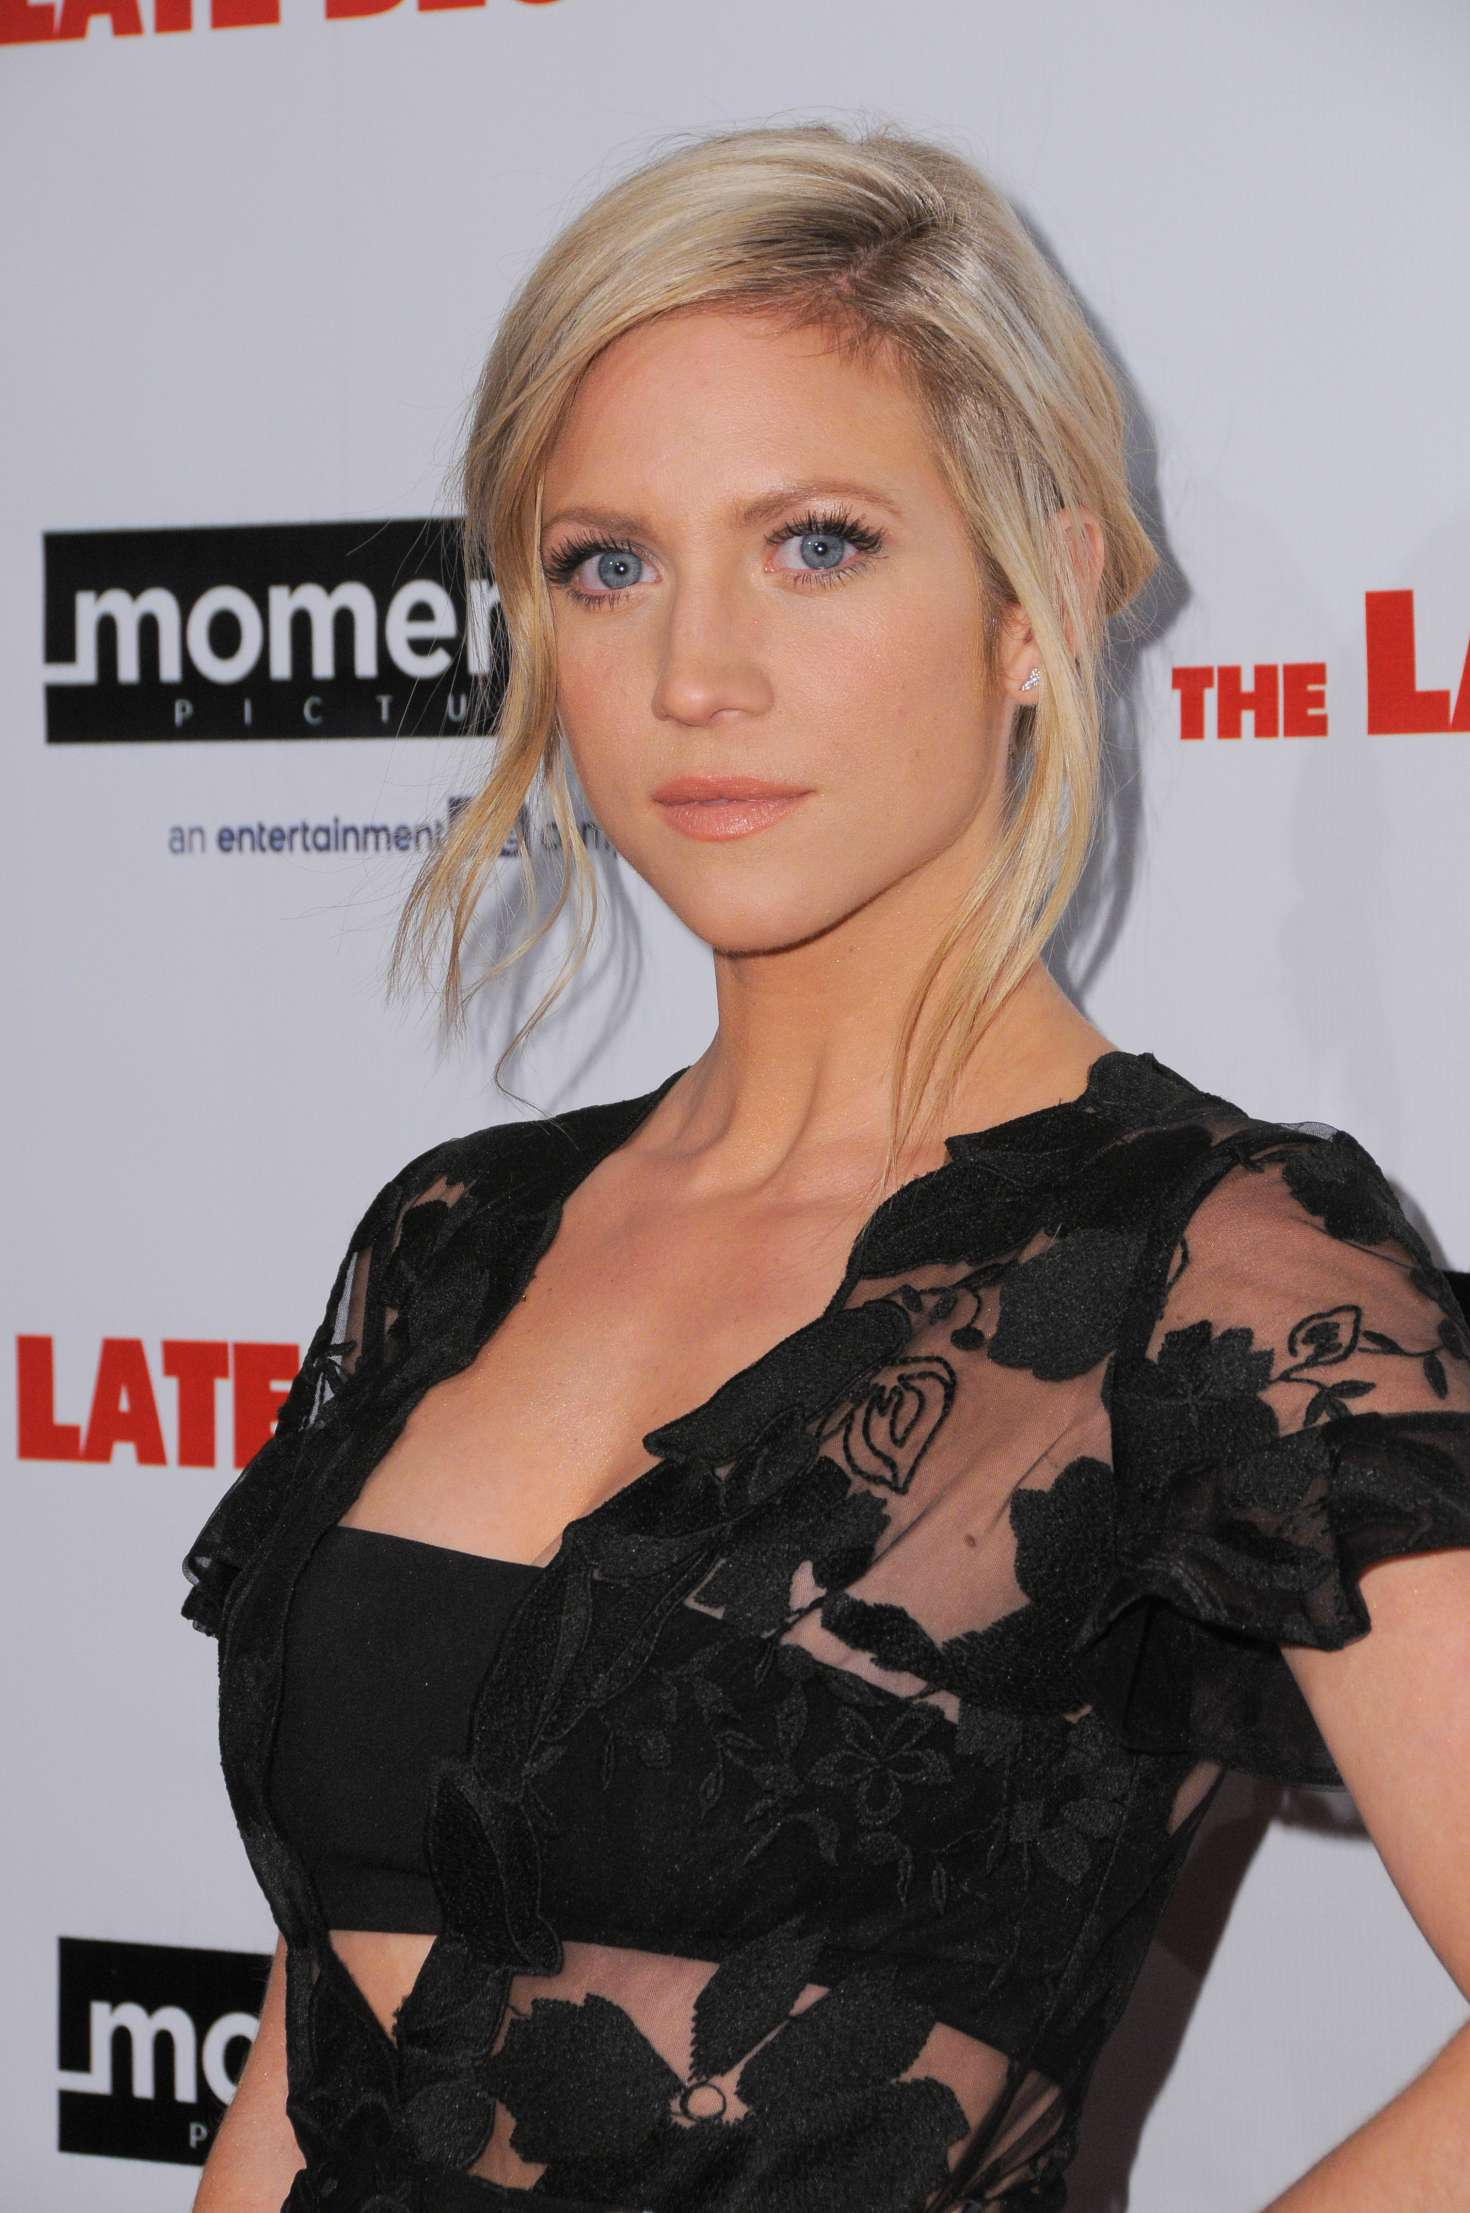 Brittany Snow - 'The Late Bloomer' Premiere in Los Angeles Brittany Snow